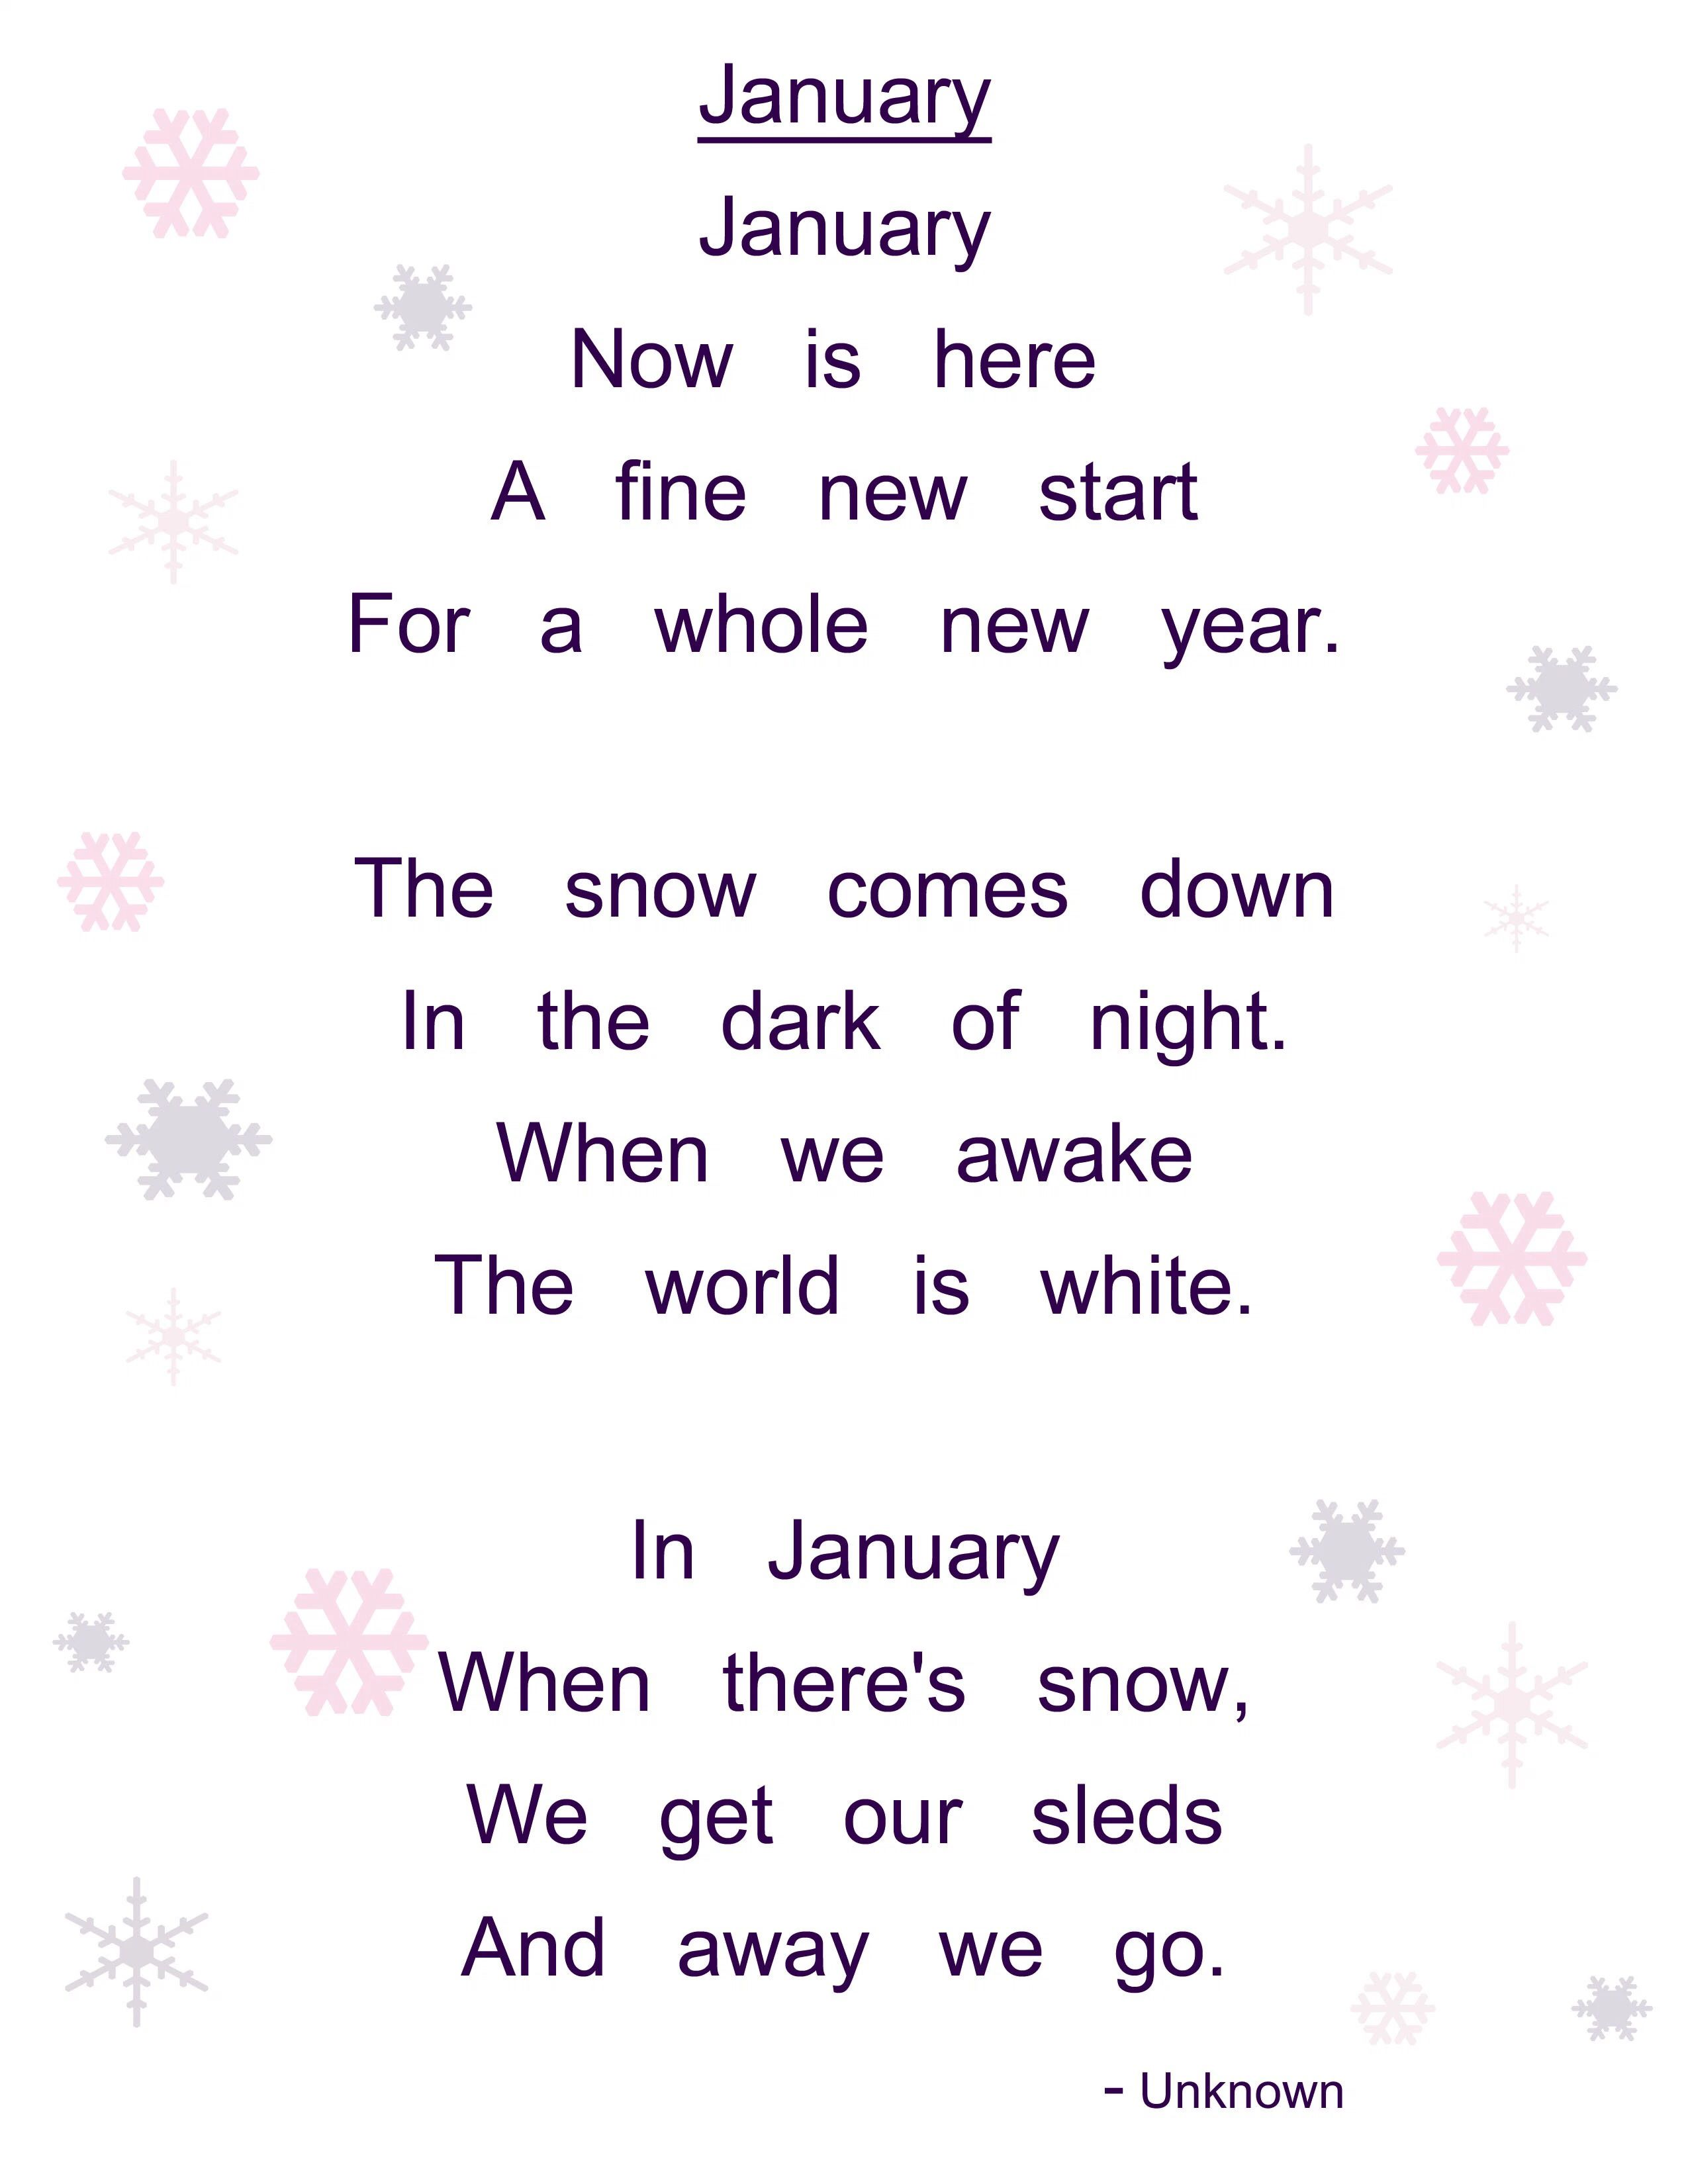 Image From I0 Wp Aylearnlove Wp Content Uploads 12 January Poem